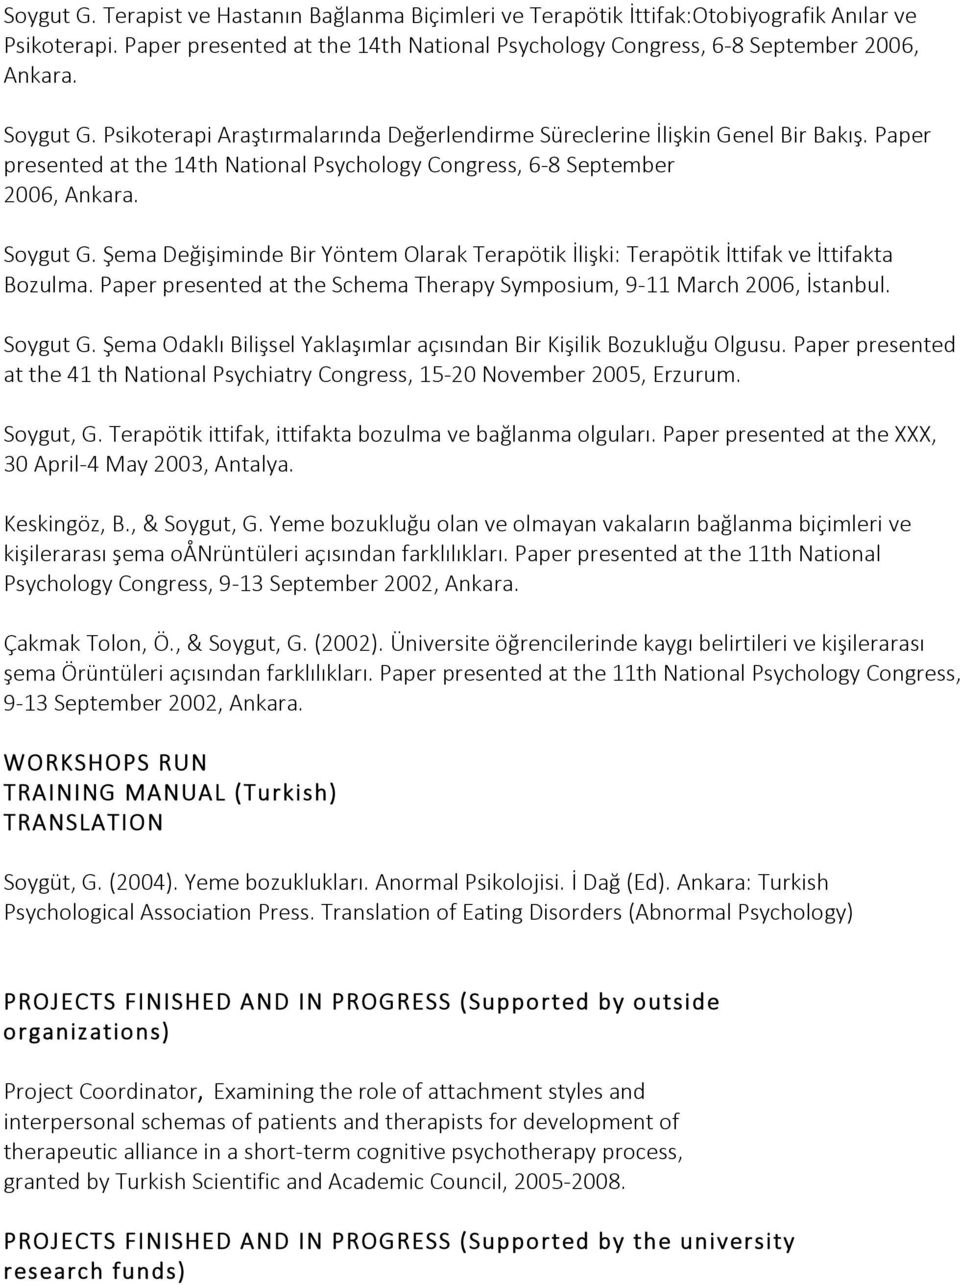 Şema Değişiminde Bir Yöntem Olarak Terapötik İlişki: Terapötik İttifak ve İttifakta Bozulma. Paper presented at the Schema Therapy Symposium, 9-11 March 2006, İstanbul. Soygut G.